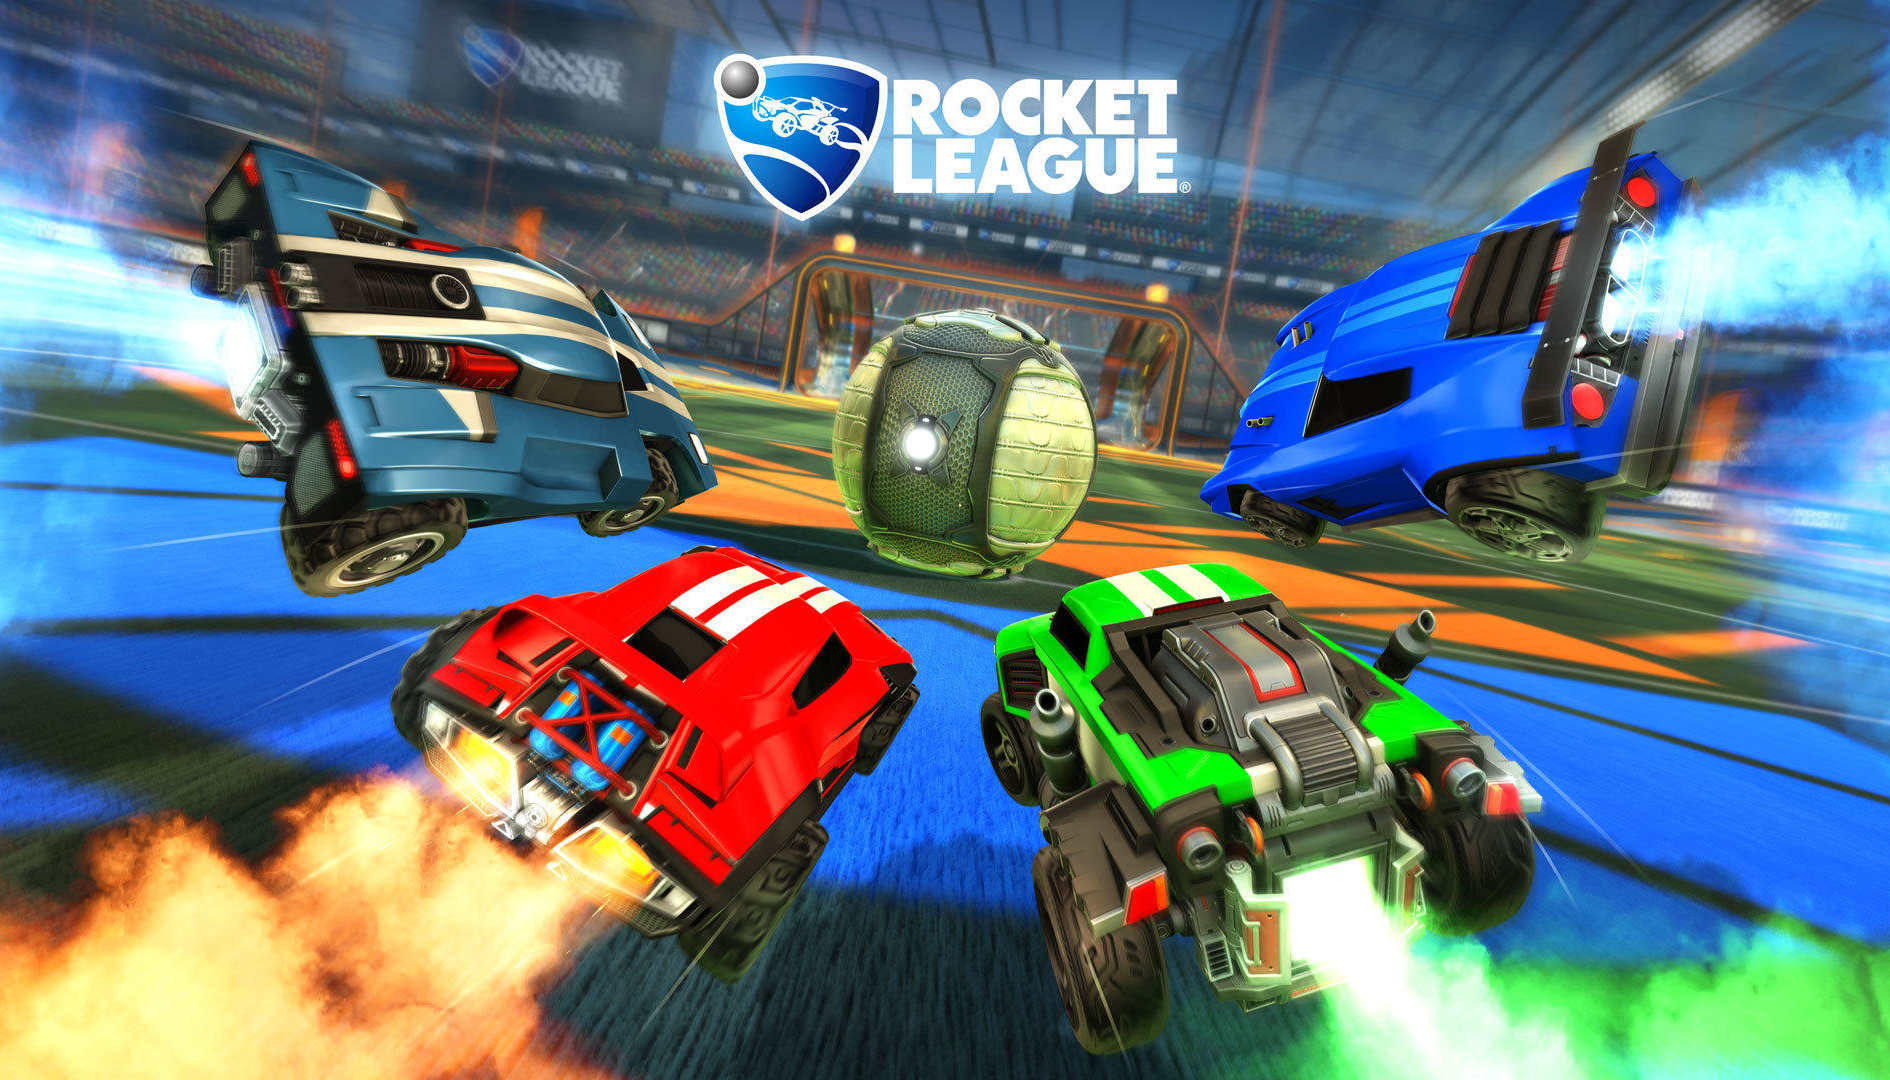 Rocket League dice addio alle loot box, ecco i cambiamenti